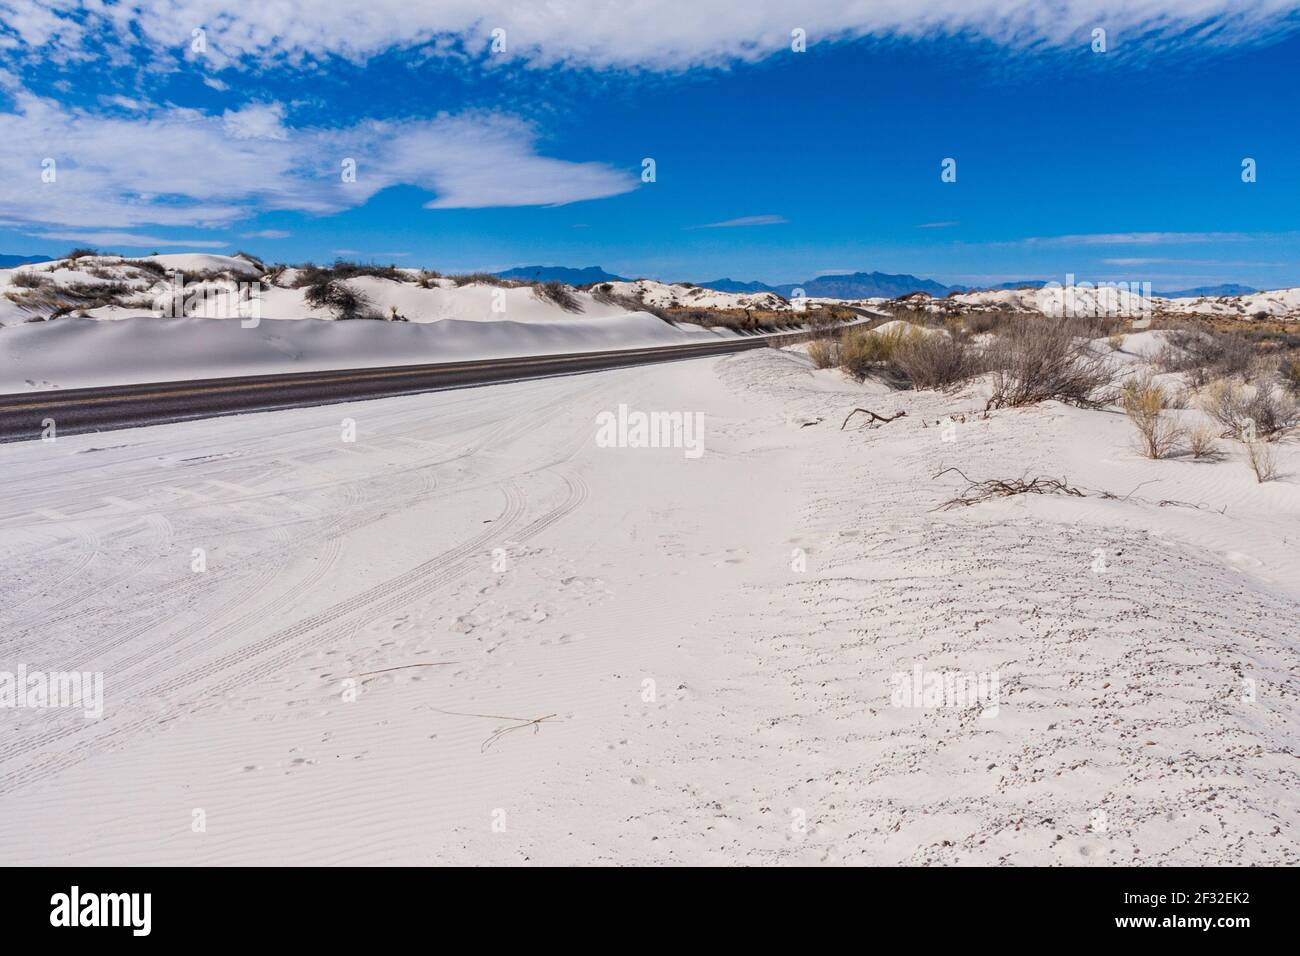 Sand dunes at White Sands National Park in New Mexico on a cold morning in February. White Sands park is at the northern end of the Chihuahuan Desert. Stock Photo